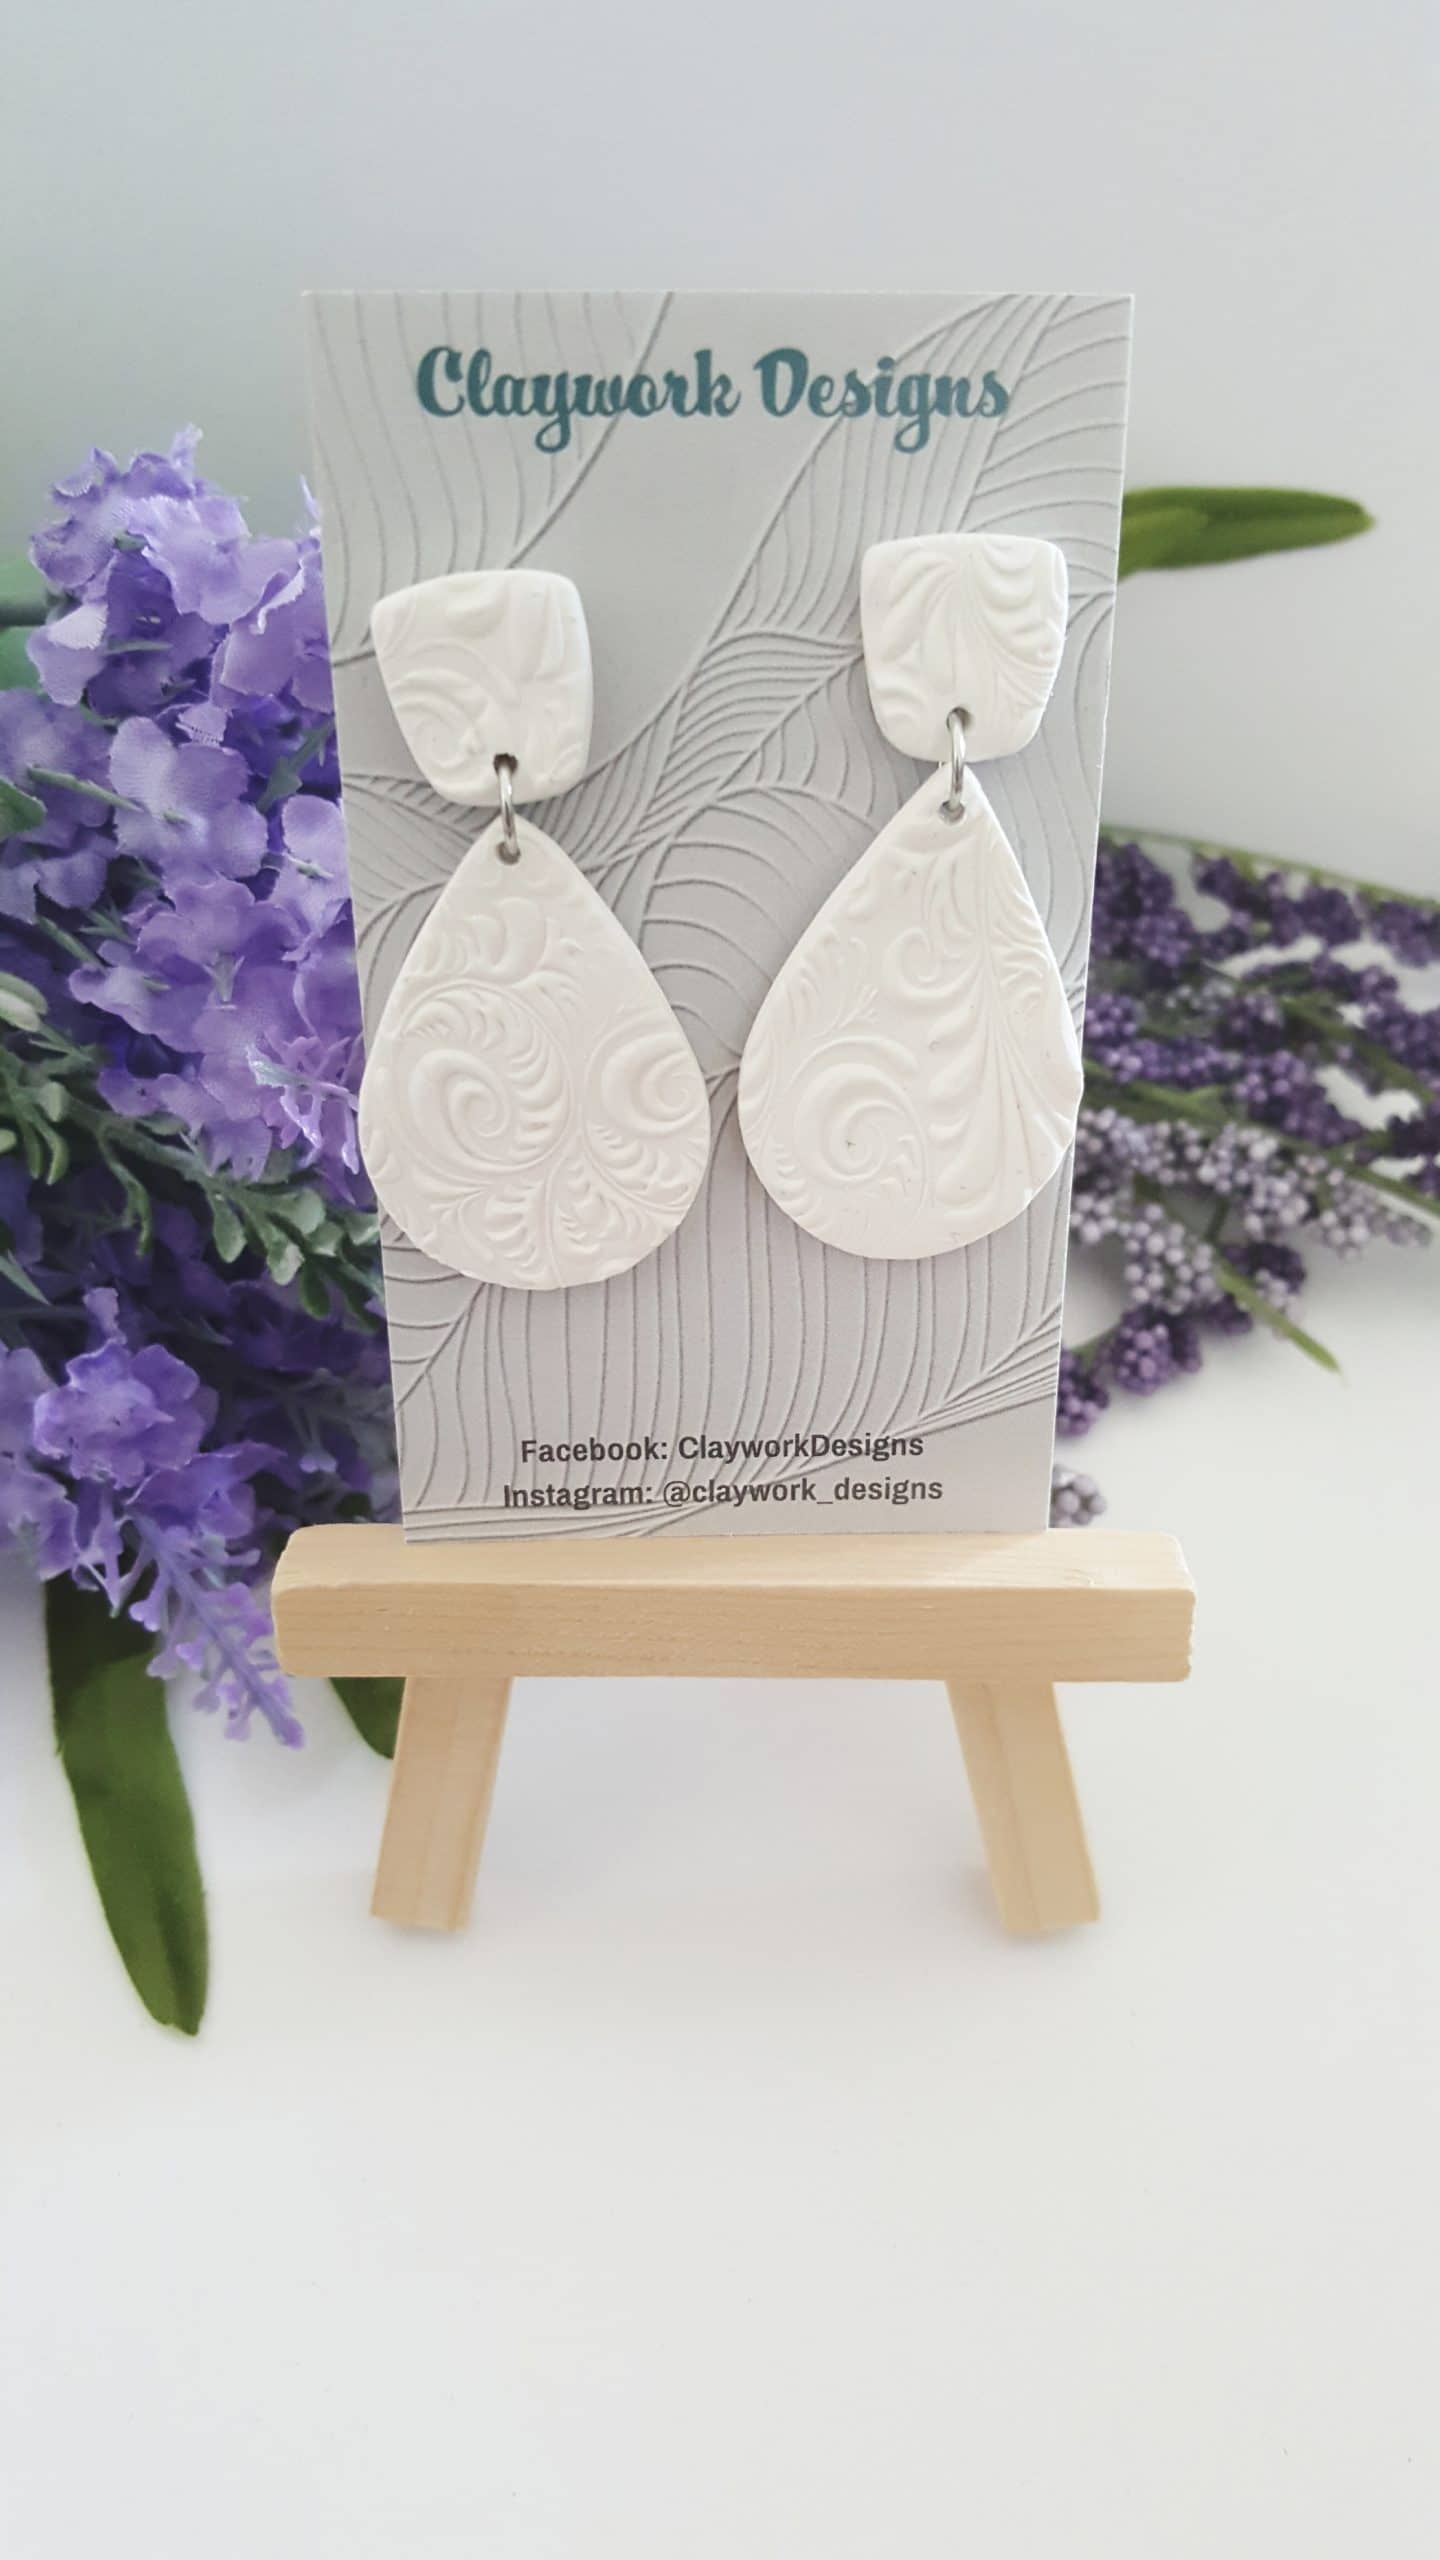 Wirework Designs | Handcrafted chainmaille jewellery and chainmaille products | Clay Style Statement Earrings | 20210515_153605